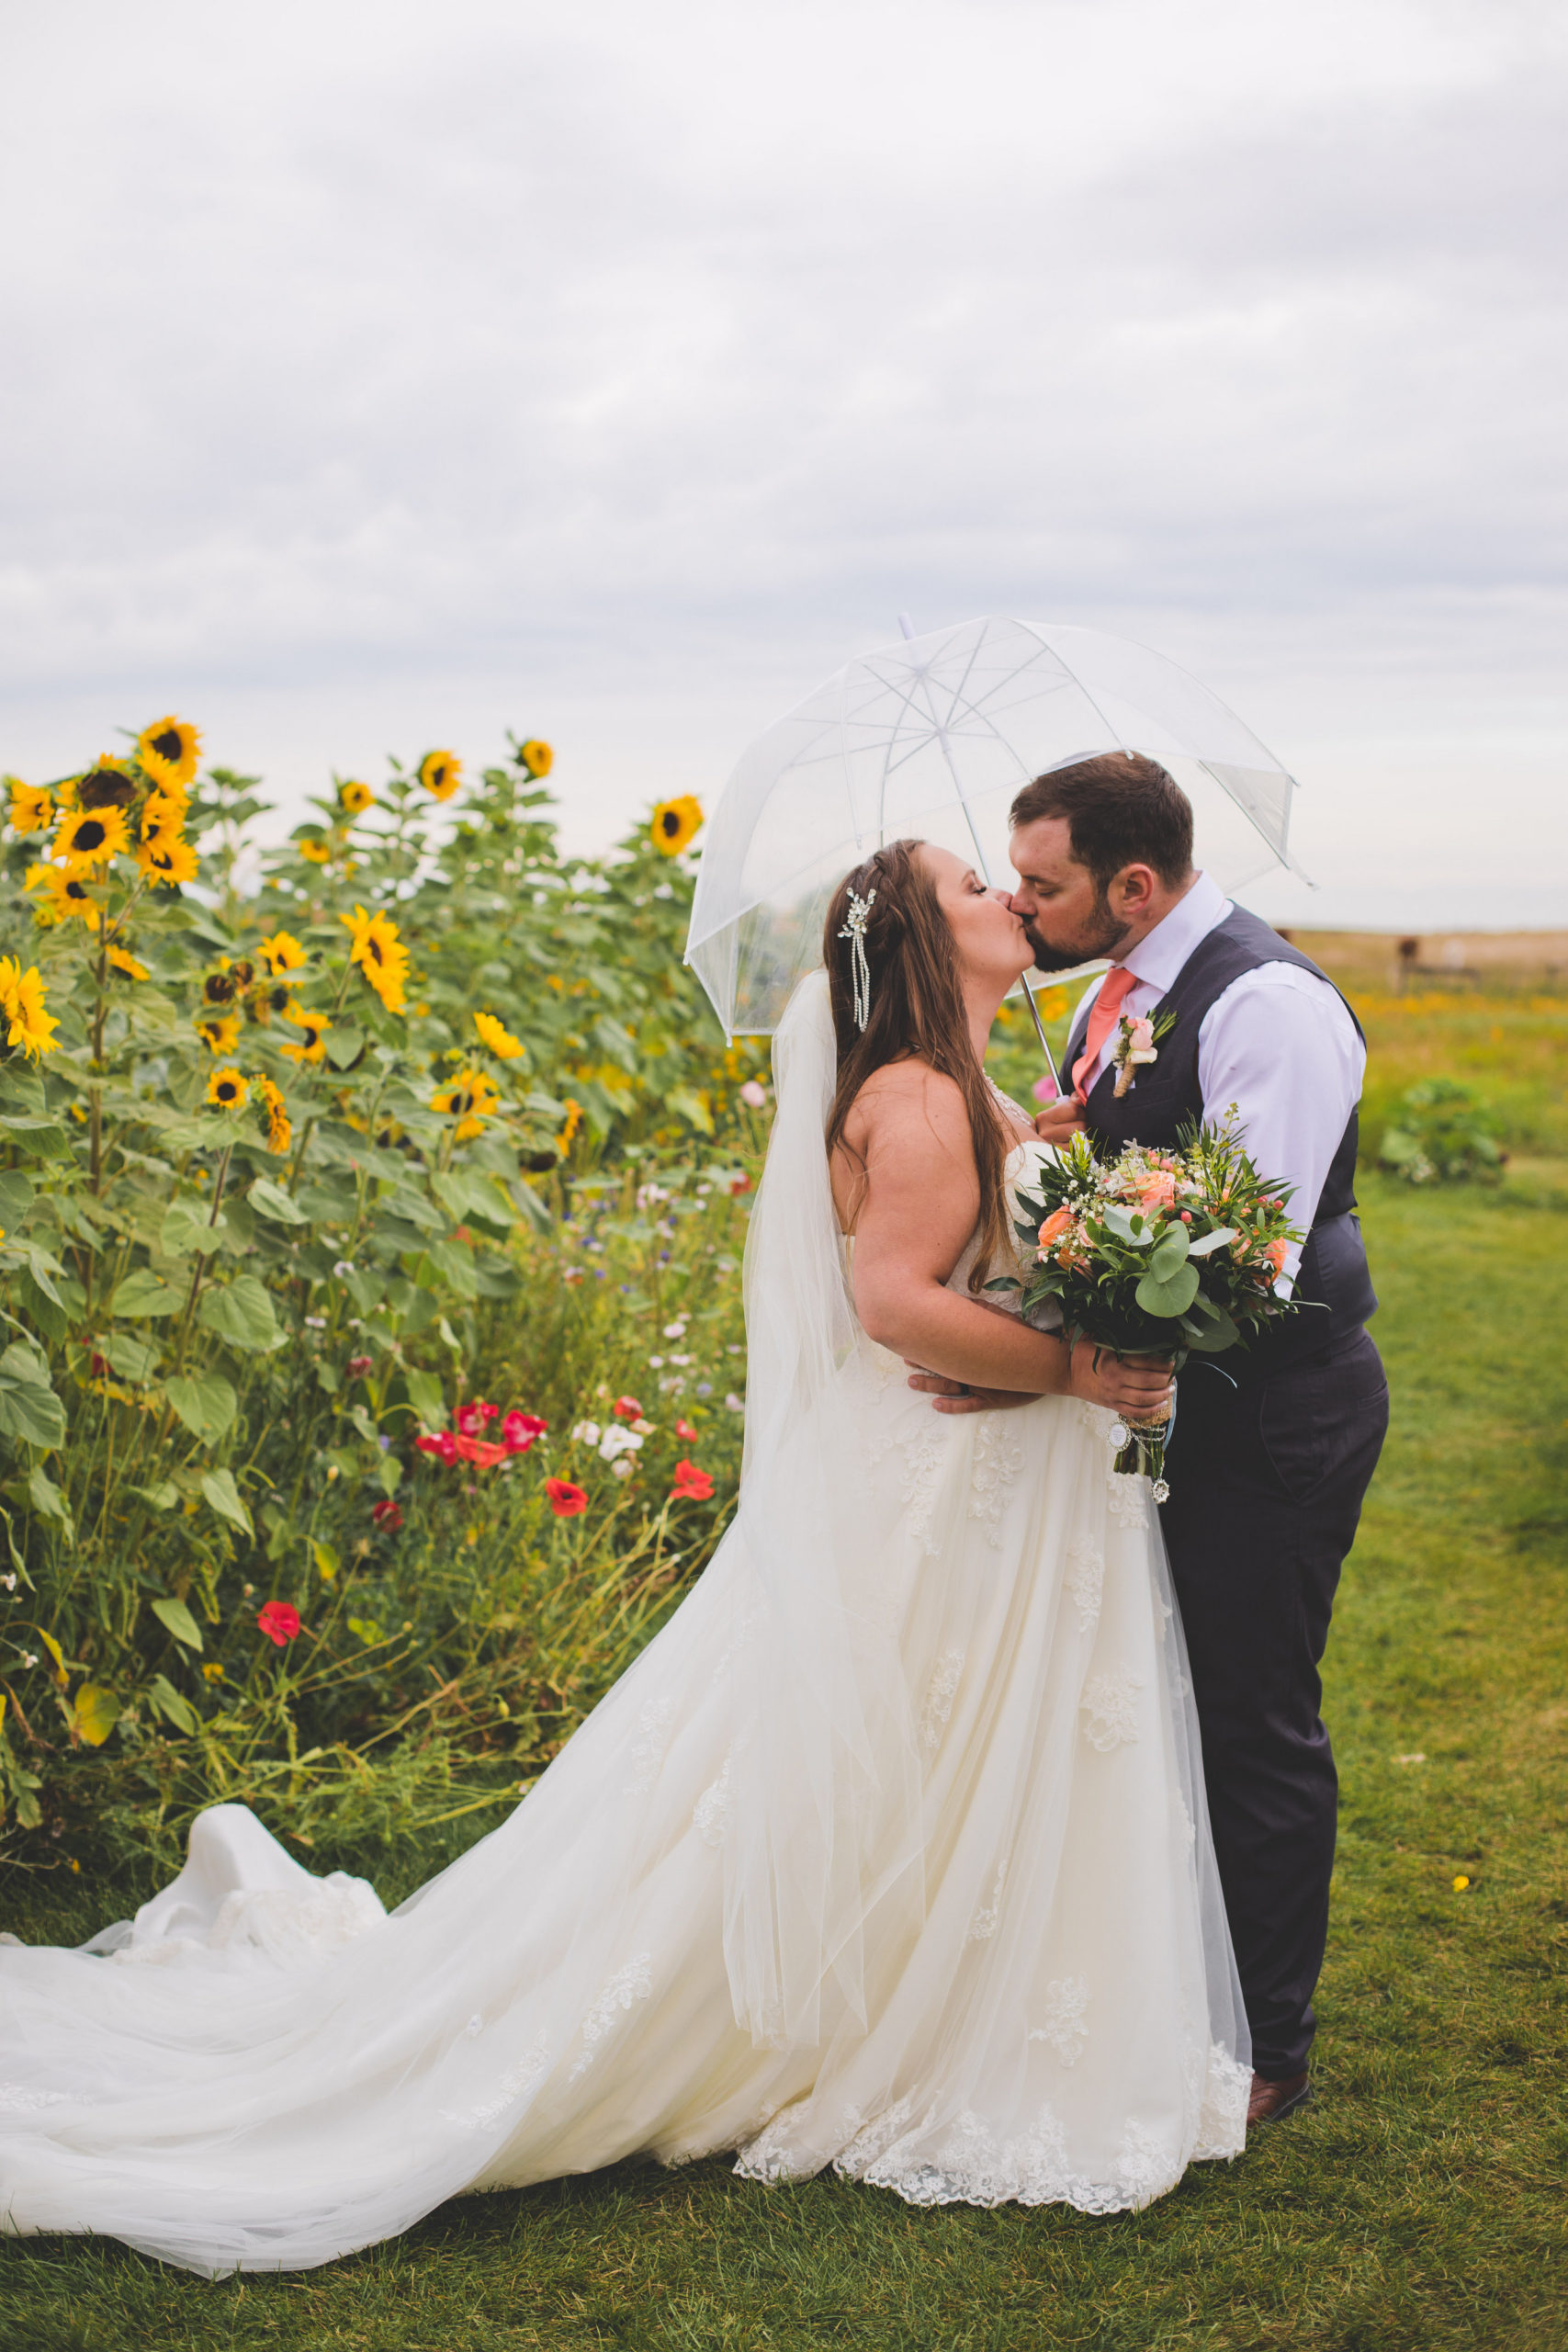 sunflowers and wildflowers make this garden and wedding space magical. The brides white lacy dress contrasts the wildflowers on this rainy Alberta prairie day. The Gathered.